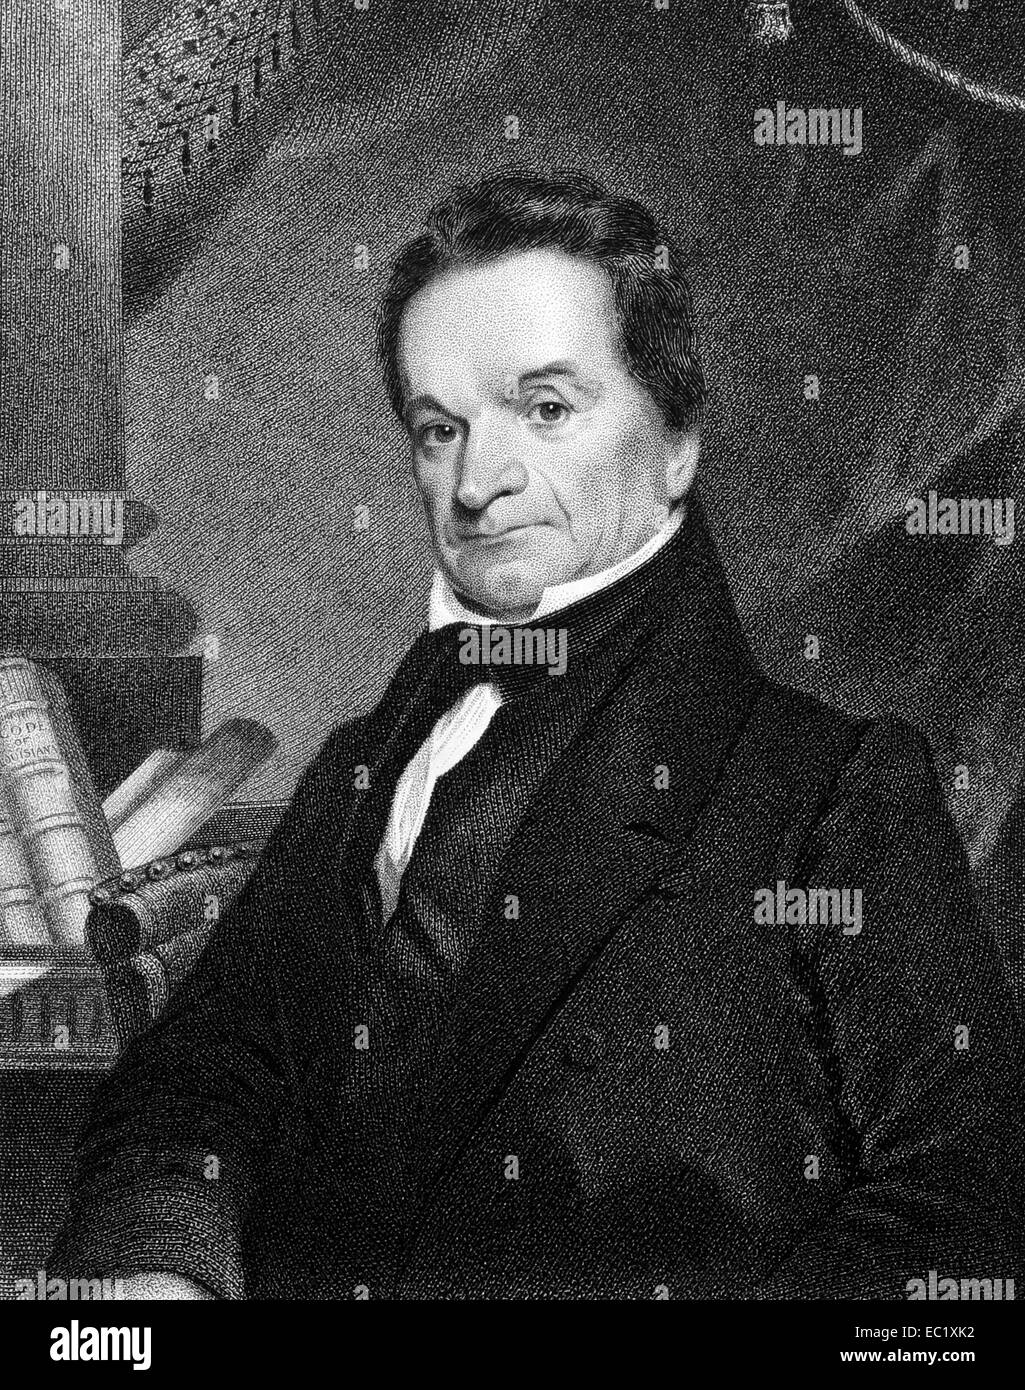 Edward Livingston (1764-1836) on engraving from 1834.  American jurist and statesman. Stock Photo